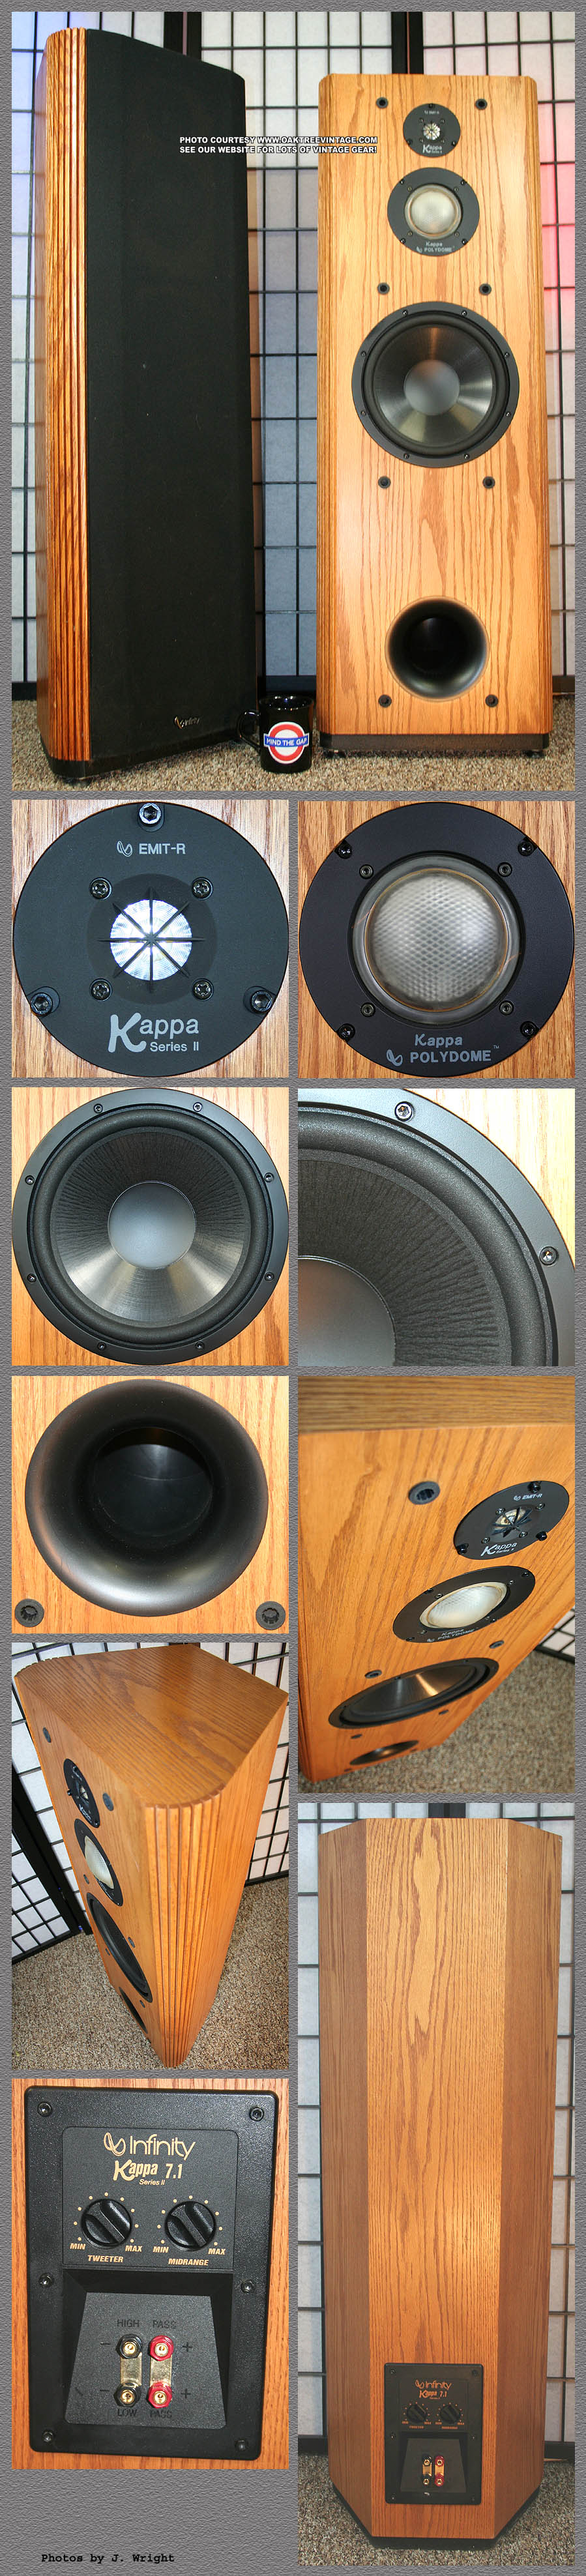 infinity kappa 7 1 series ii speakers